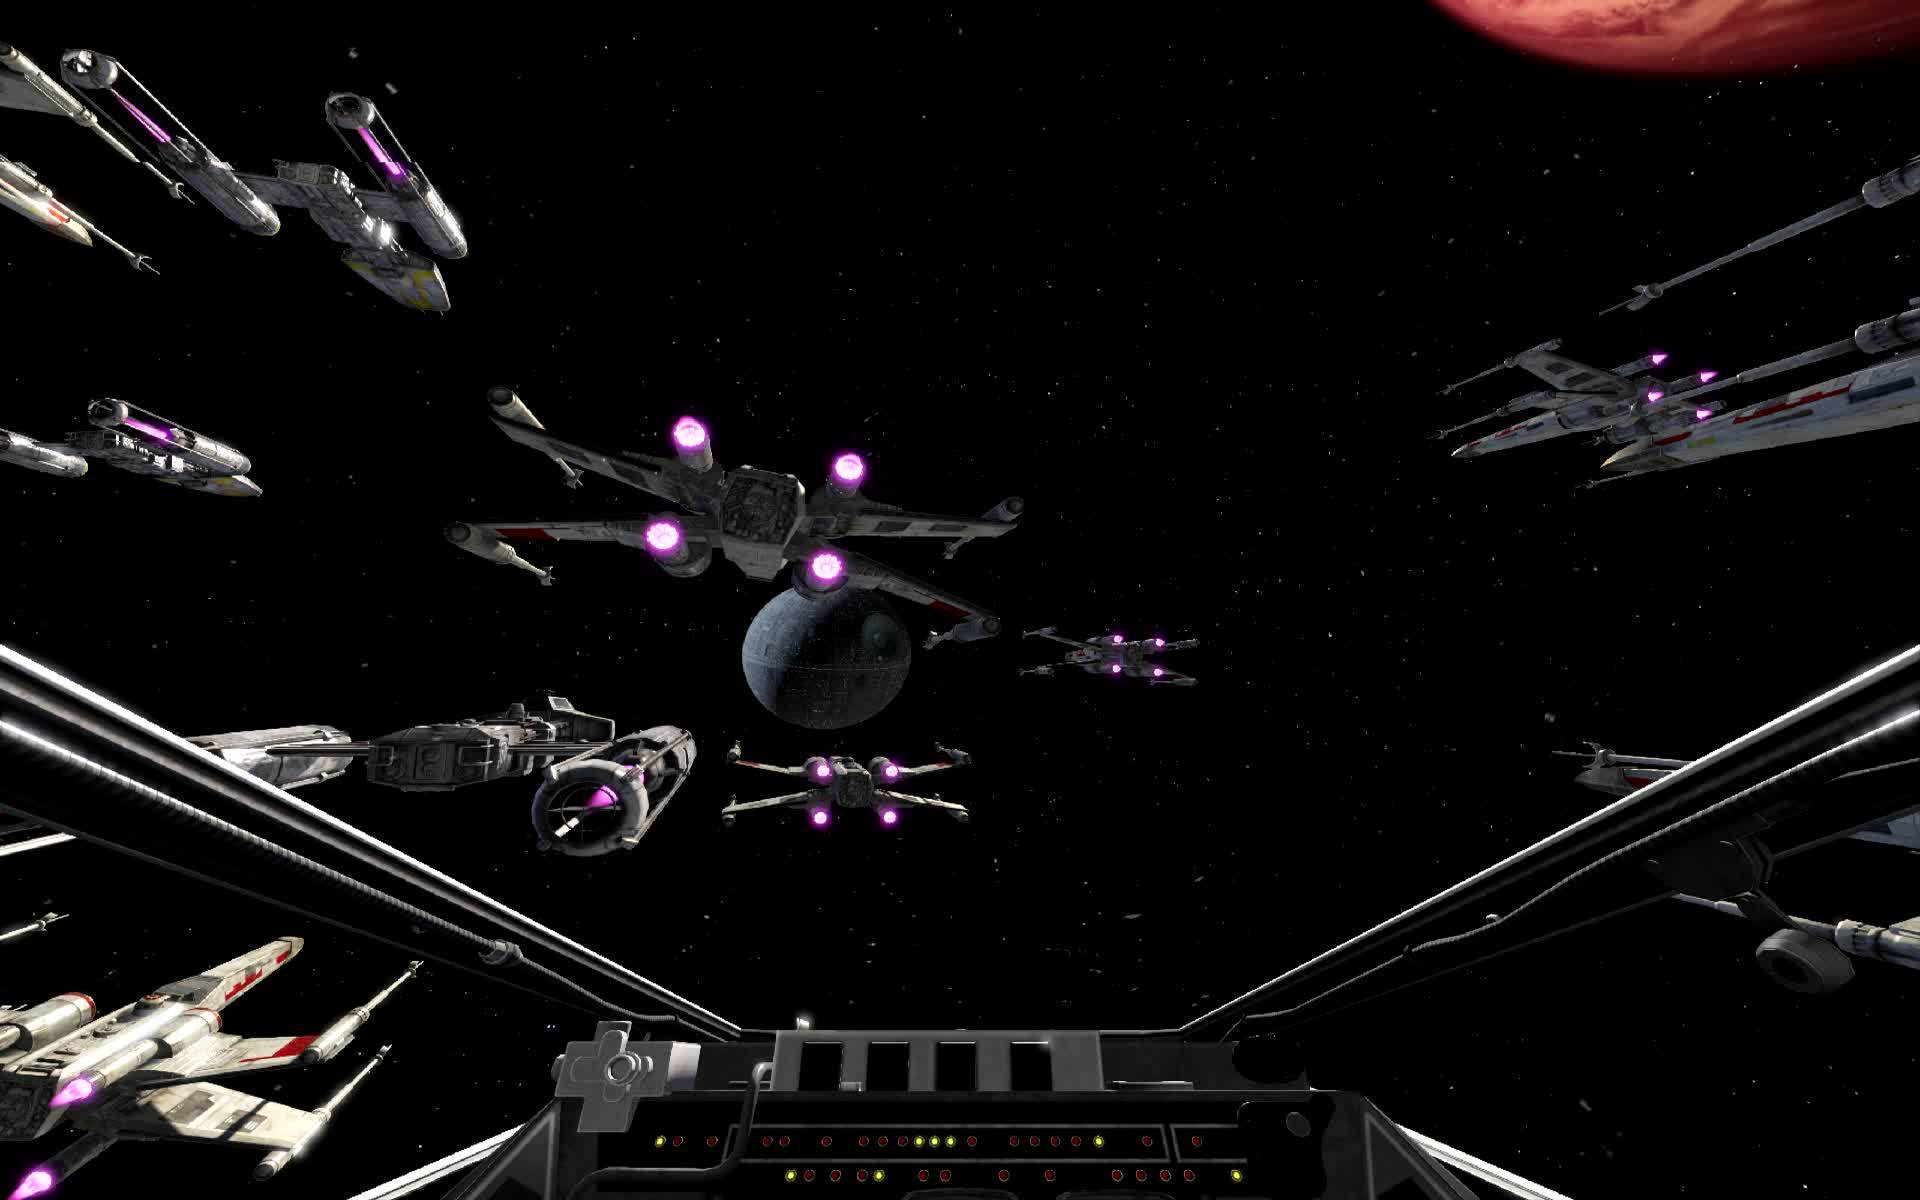 Image currently unavailable. Go to www.generator.safelyhack.com and choose Star Wars Rebels: Recon Missions image, you will be redirect to Star Wars Rebels: Recon Missions Generator site.